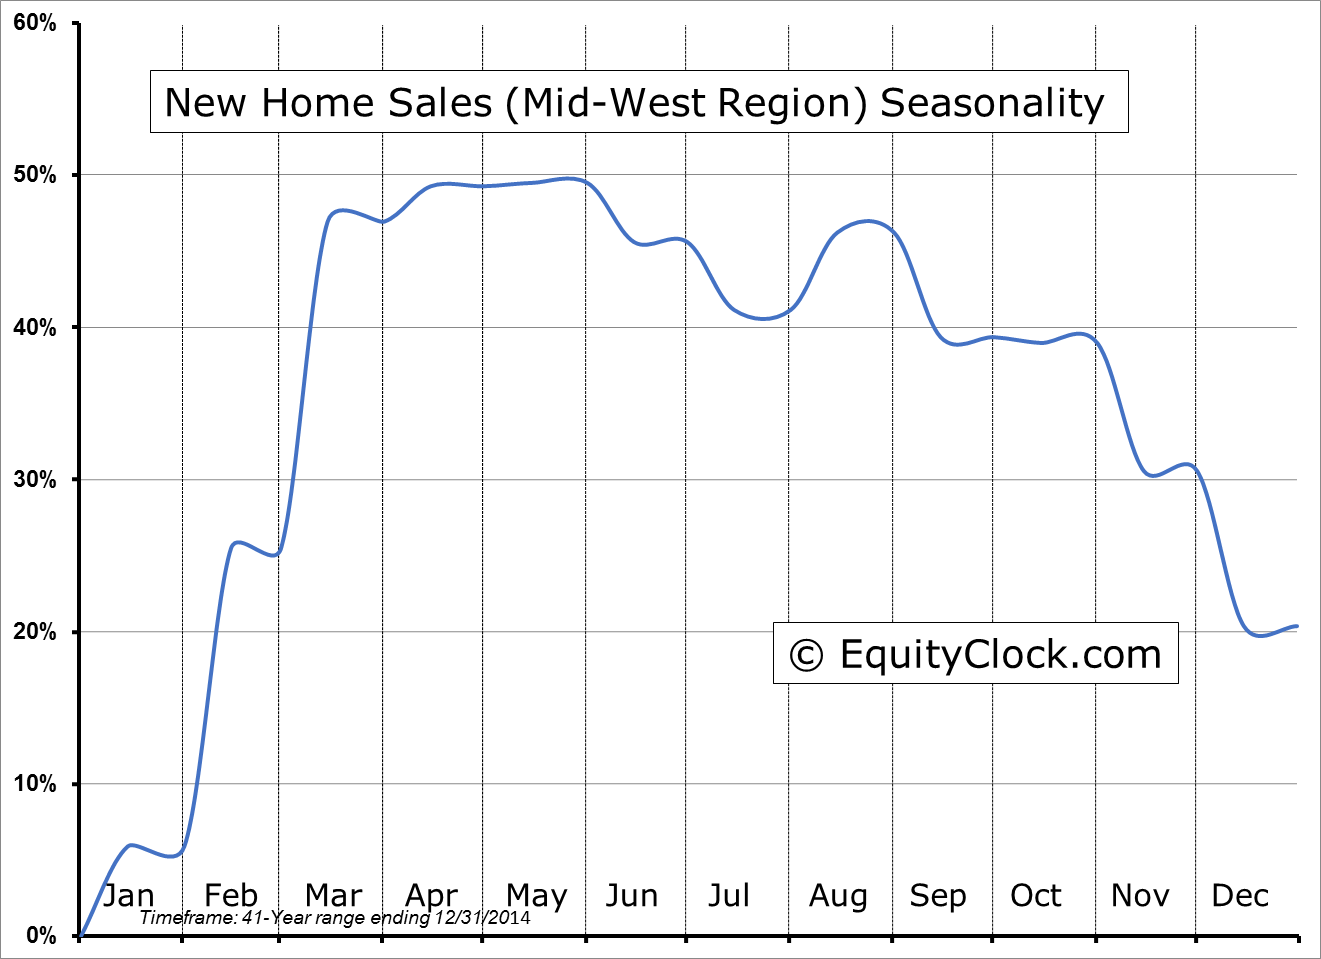 New Home Sales Seasonality